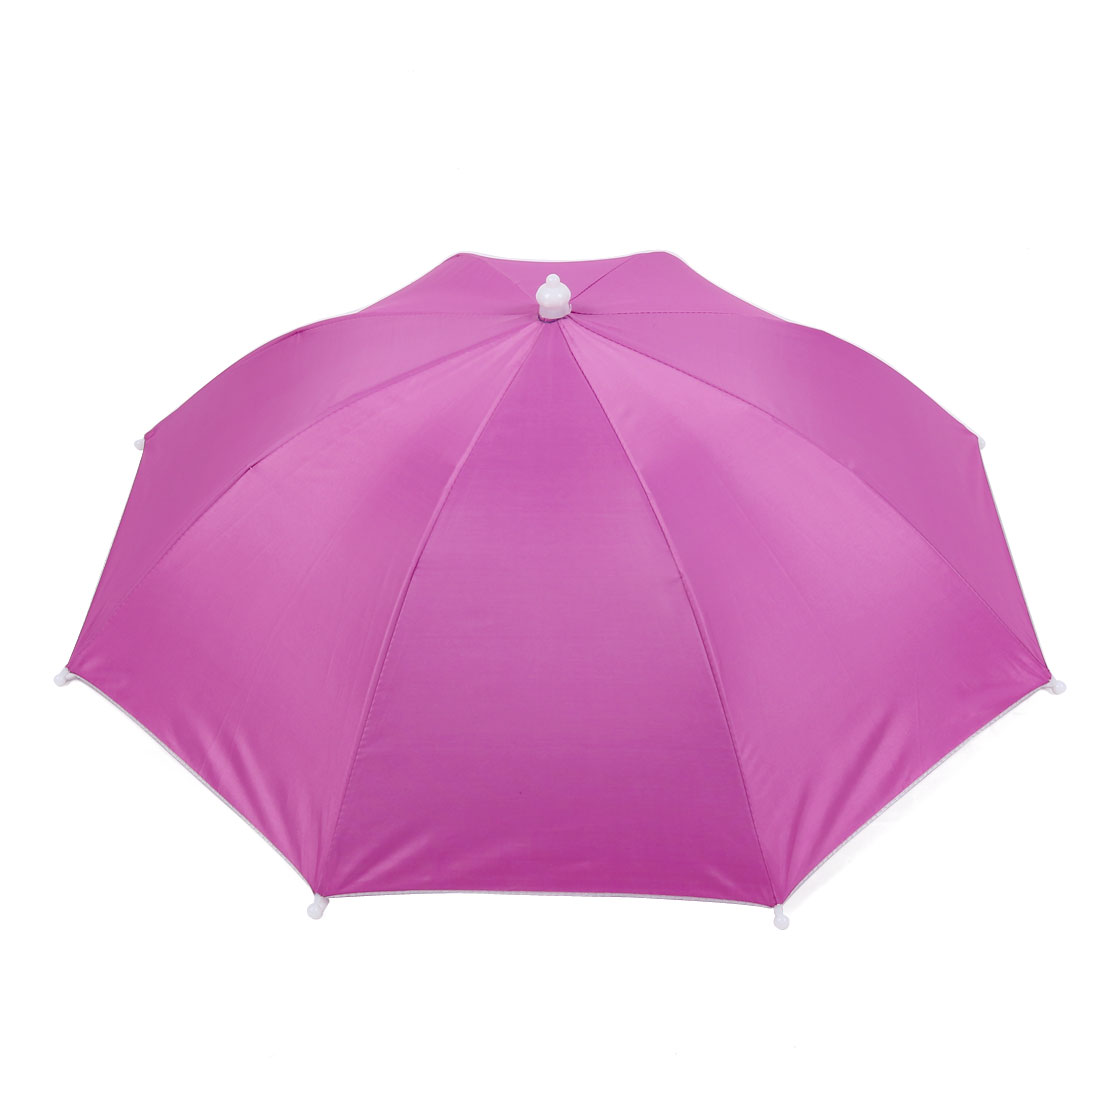 Pink Headwear Polyester Canopy Umbrella Hat for Fishing